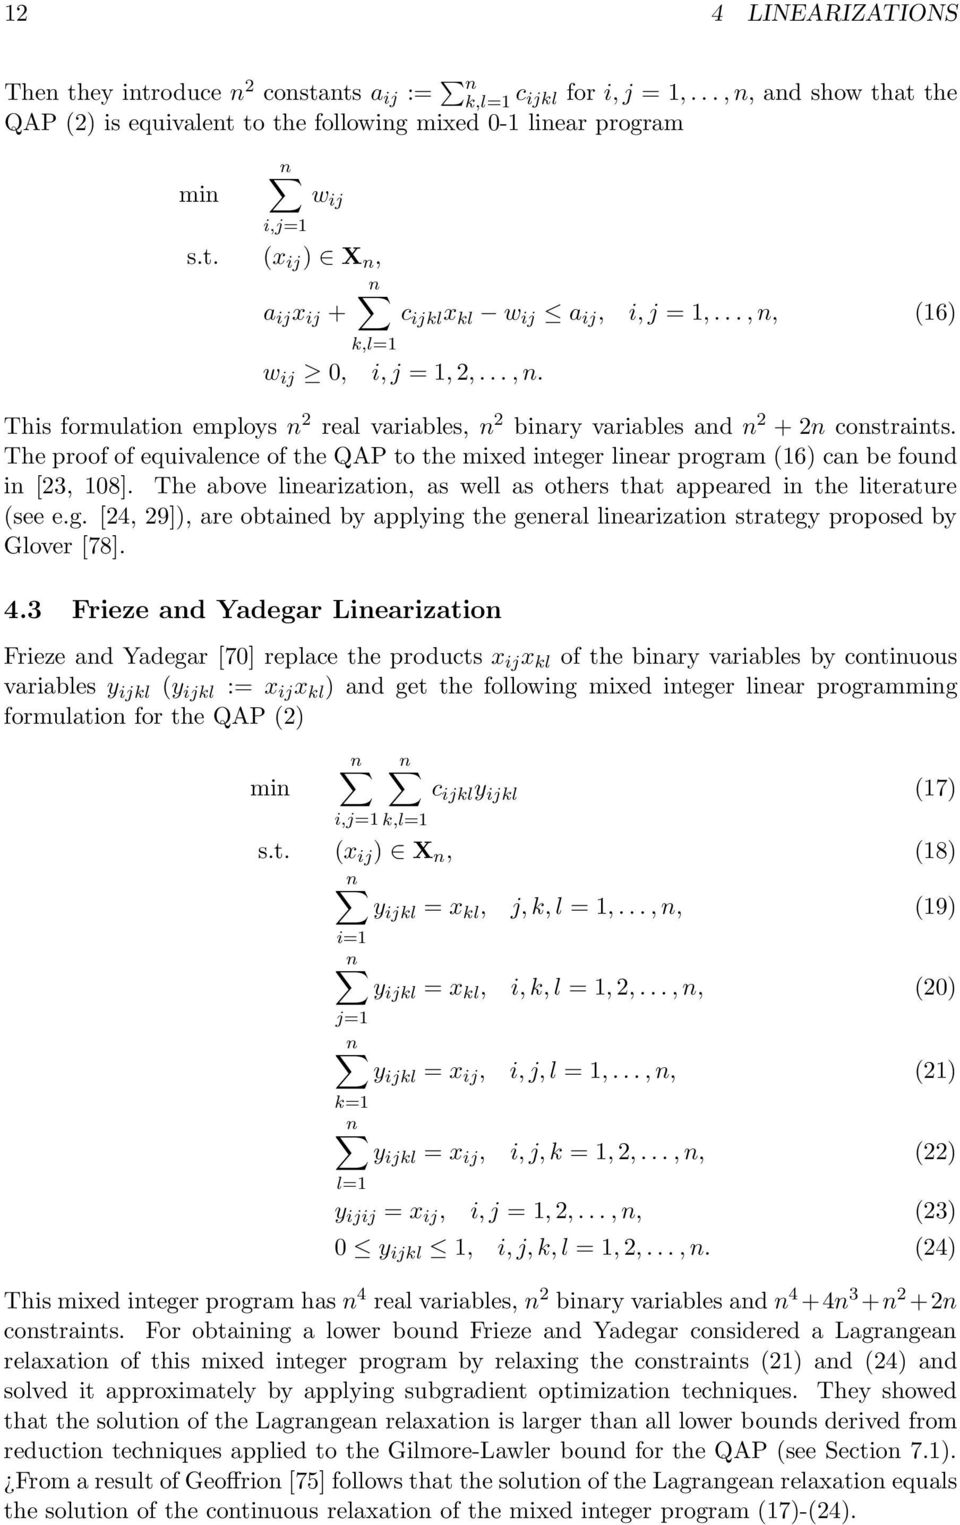 The proof of equivalence of the QAP to the mixed integer linear program (16) can be found in [23, 108]. The above linearization, as well as others that appeared in the literature (see e.g. [24, 29]), are obtained by applying the general linearization strategy proposed by Glover [78].